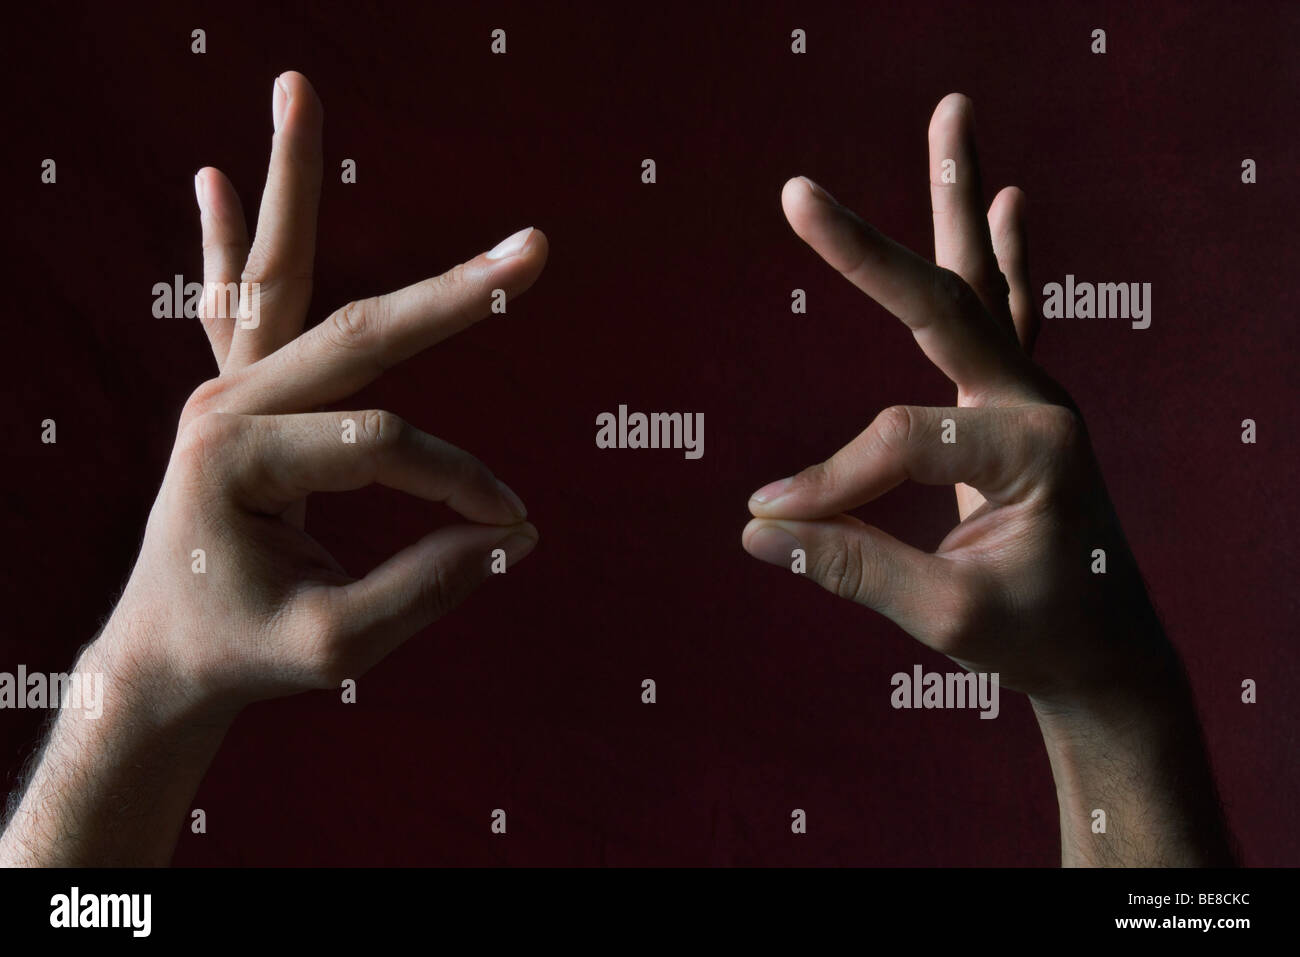 Hands pretending to be roosters - Stock Image